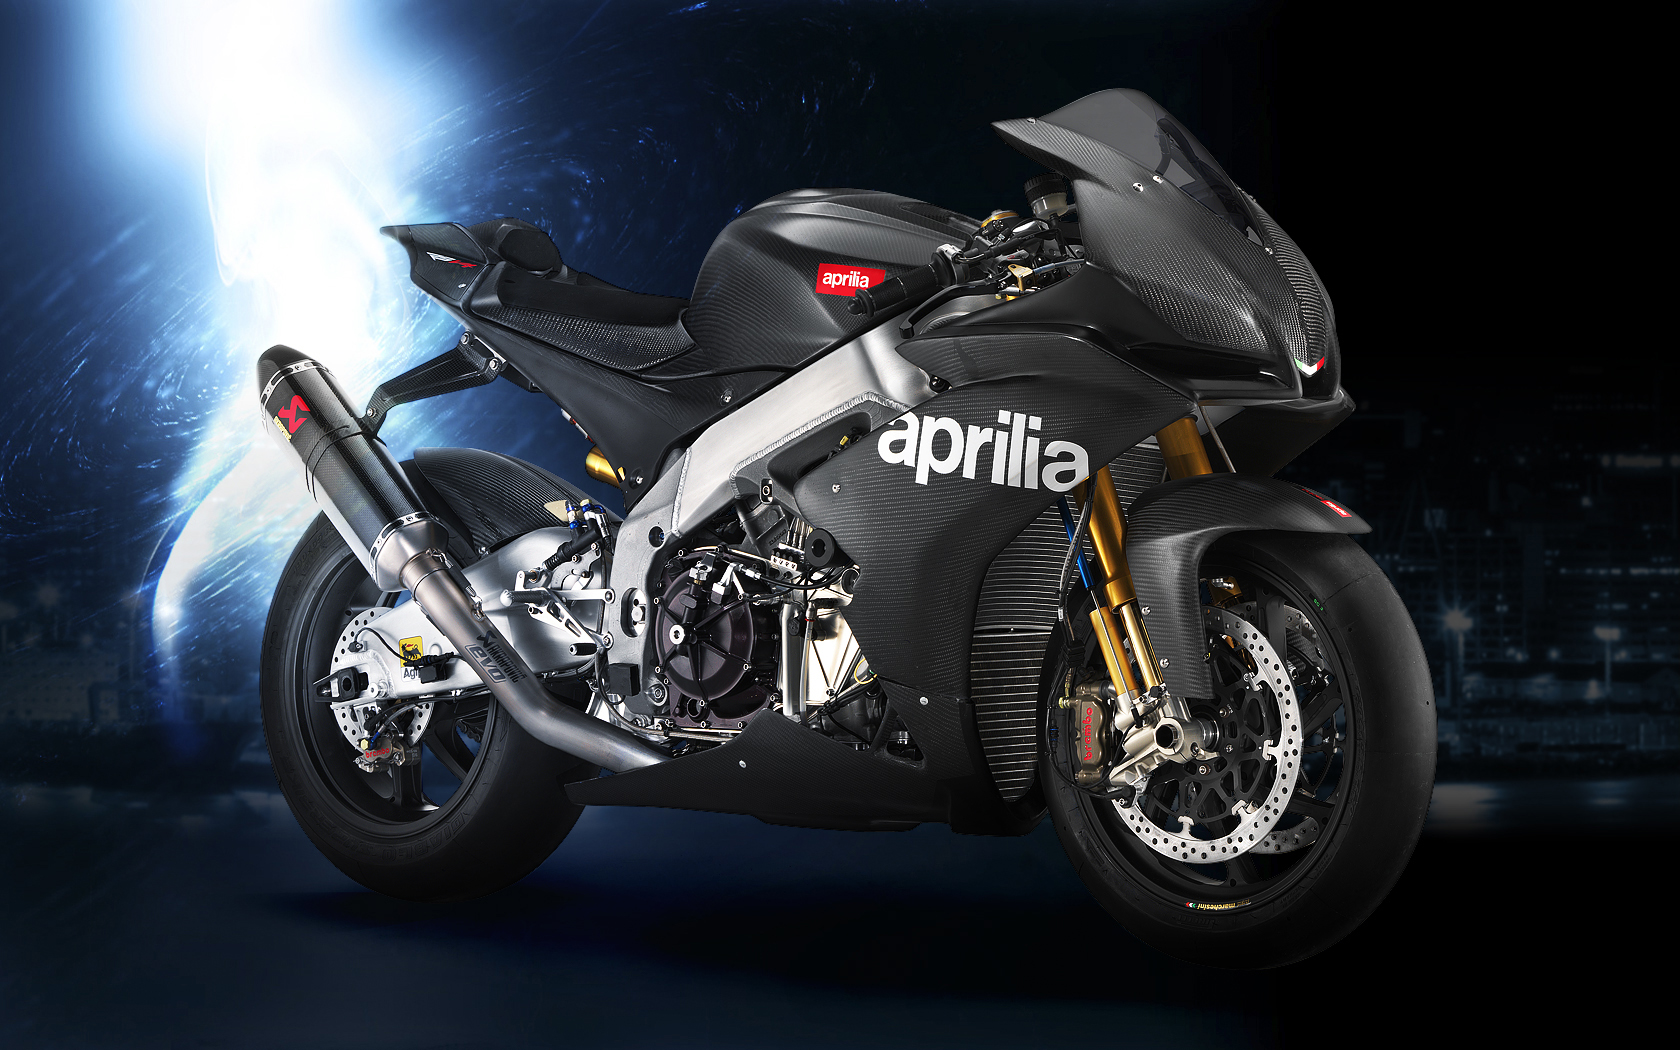 Aprilia RSV4 Wallpapers and Background Images   stmednet 1680x1050